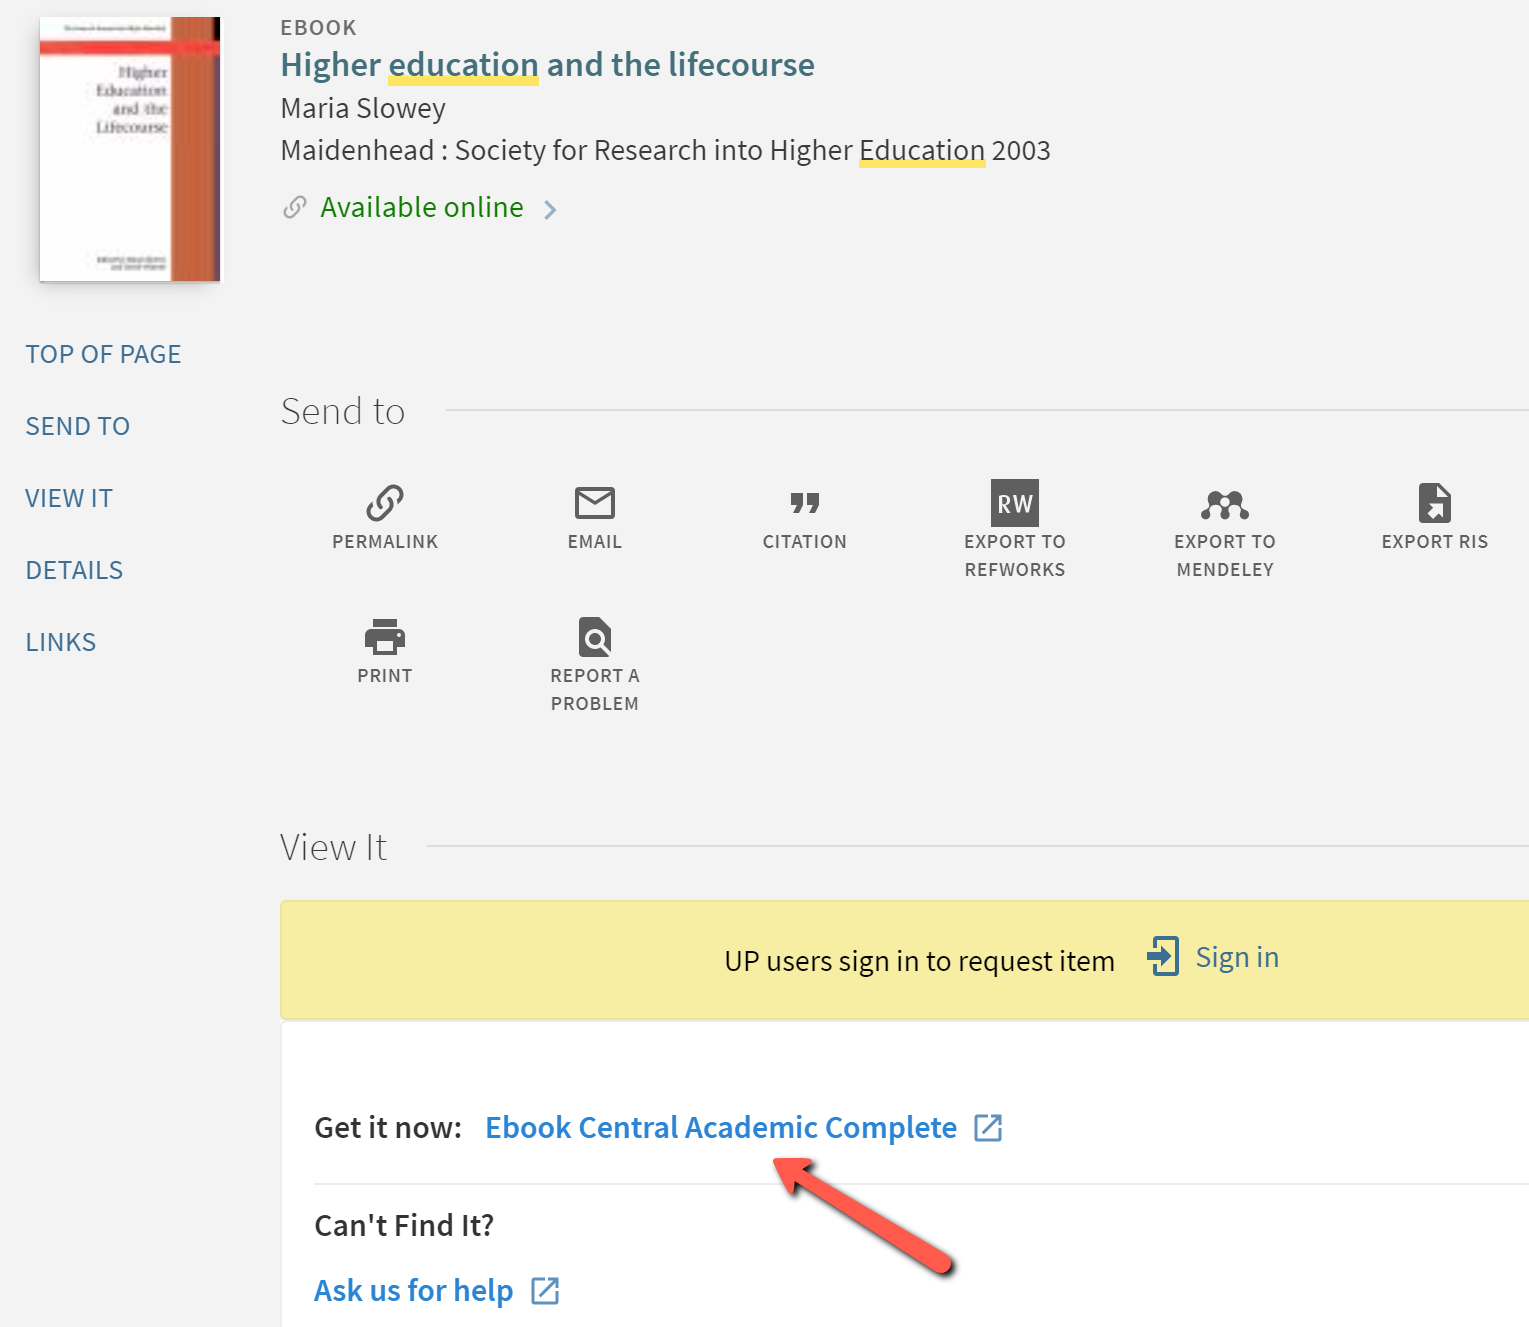 Full record for eBook with arrow pointing to Get it now link